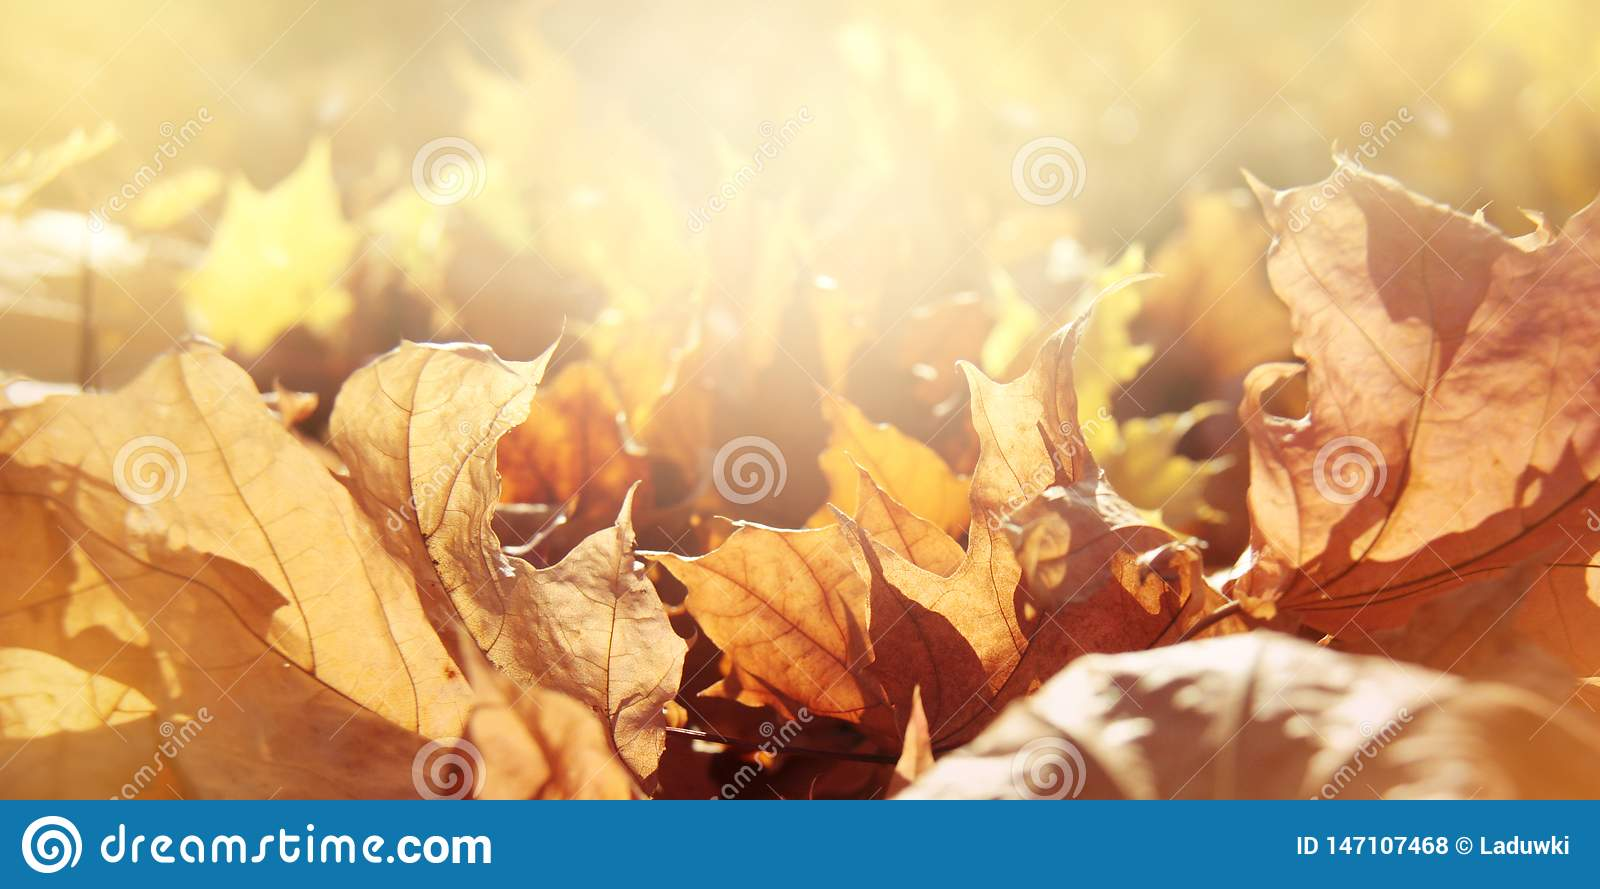 Nature autumn panoramic background with maple foliage